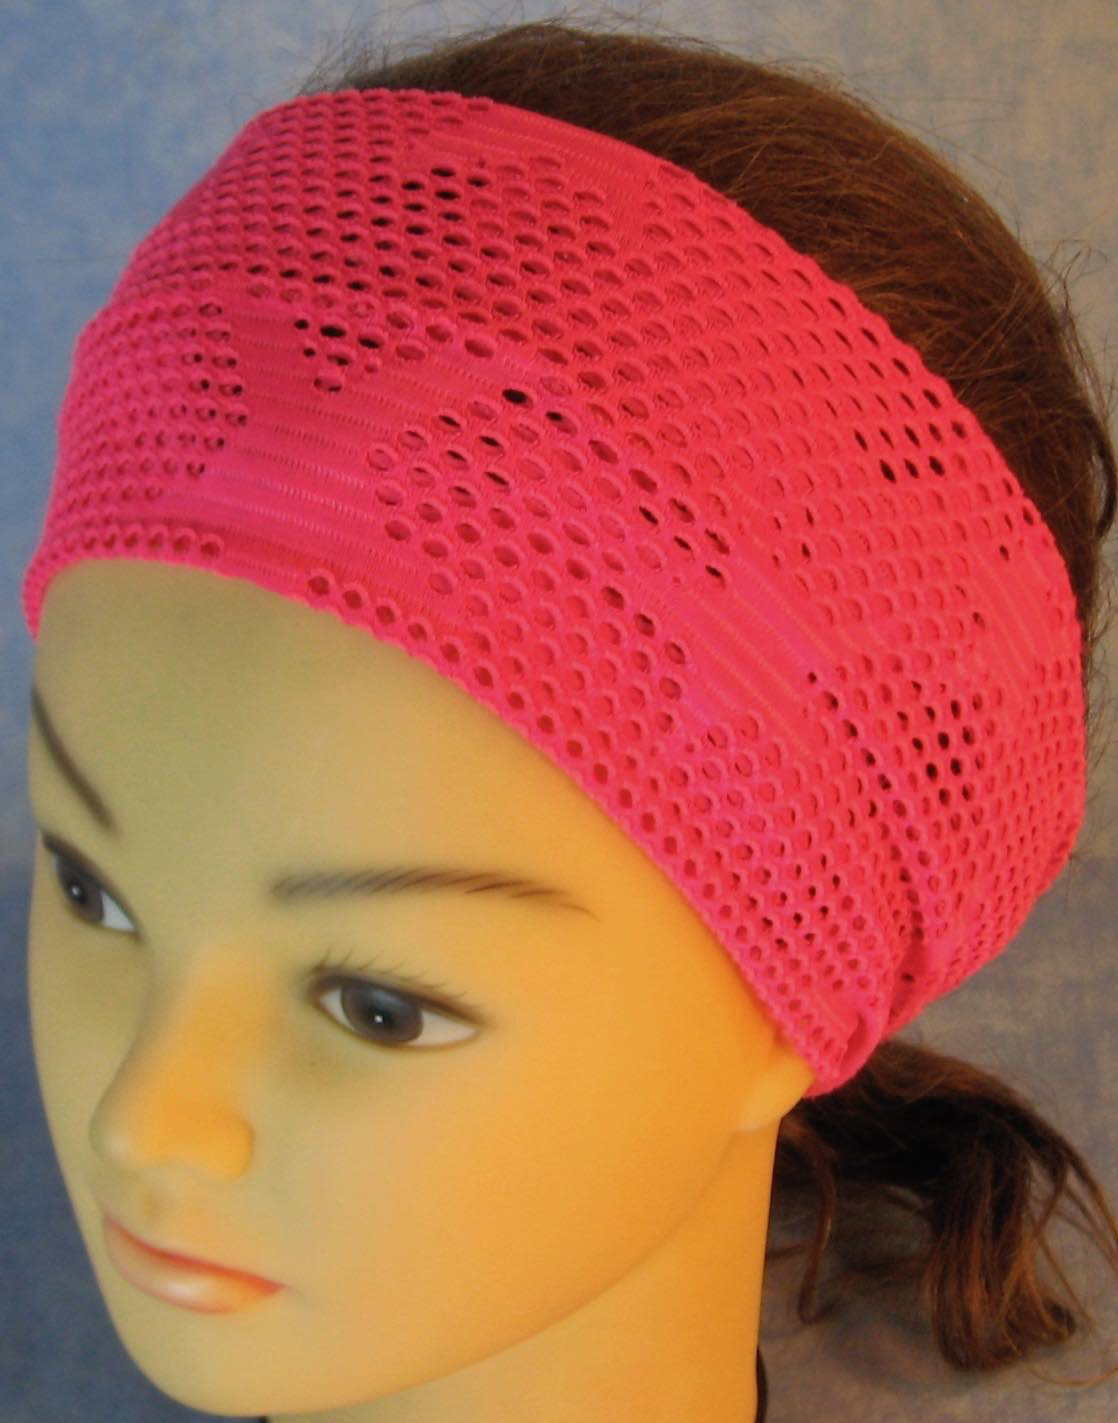 Headband-Pink Fishnet with Stars Knit-Adult M